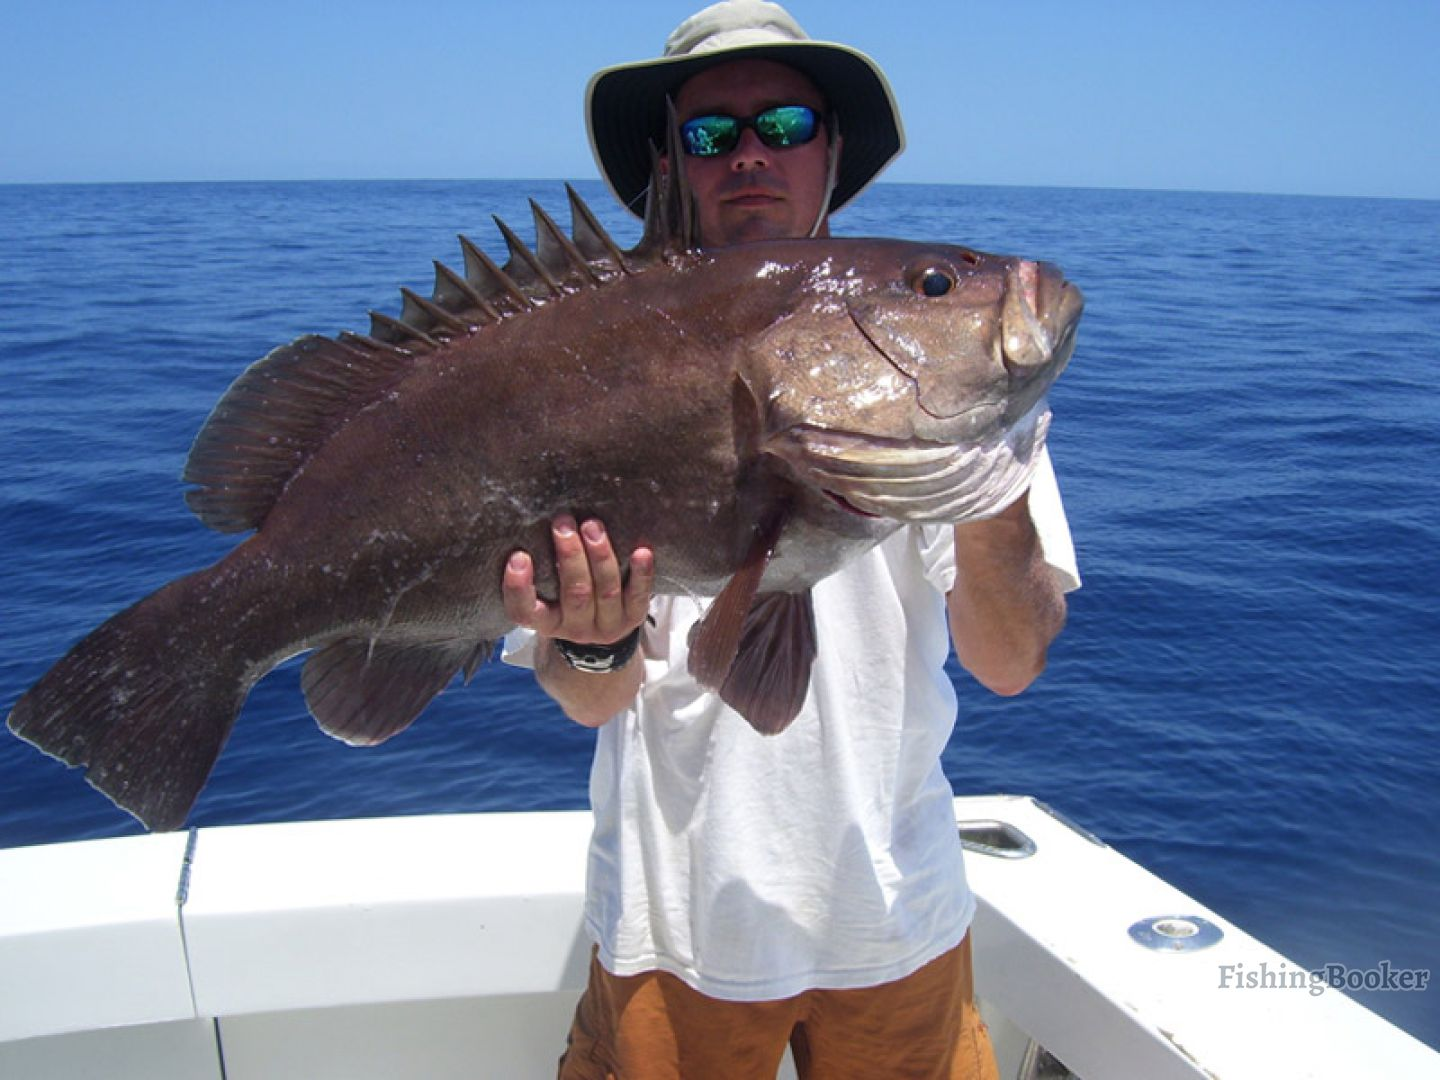 Capullo sportfishing tamarindo costa rica for Tamarindo costa rica fishing